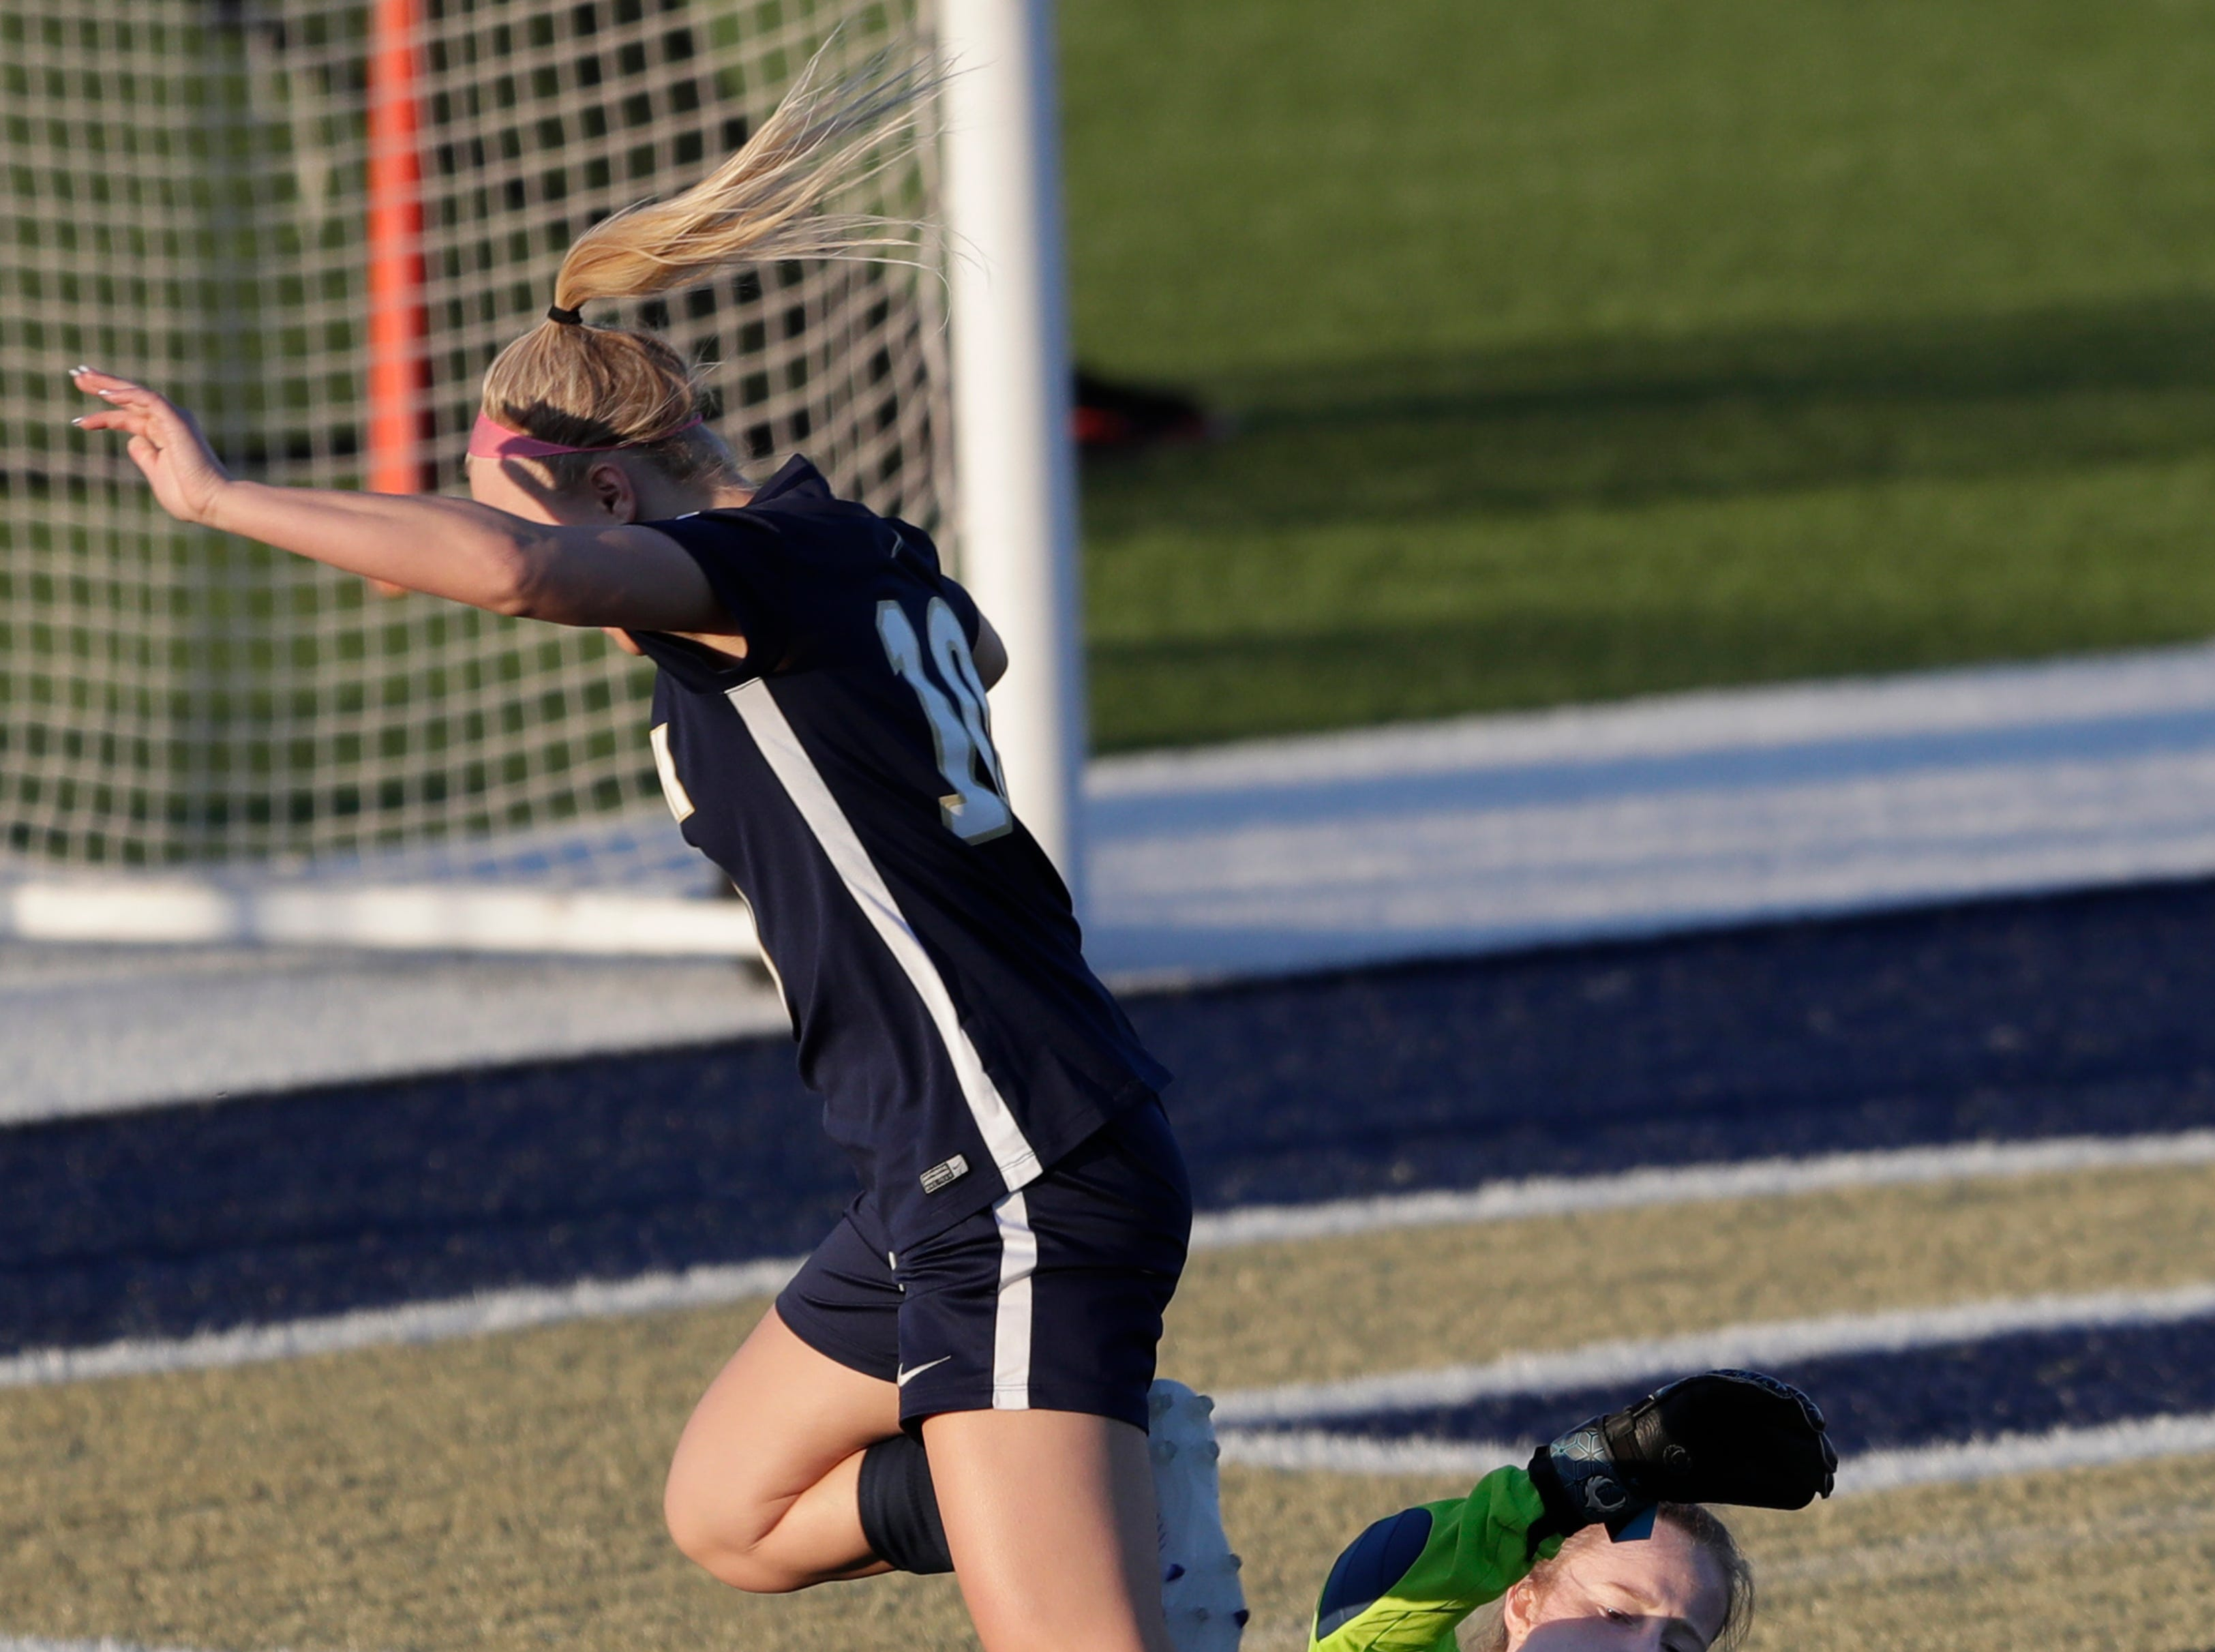 Kaukauna High School's keeper Autumn Steffens (25) stops Appleton North High School's Abby Kloiber (10) from scoring a goal during their girls soccer game Tuesday, April 23, 2019, in Appleton, Wis. 